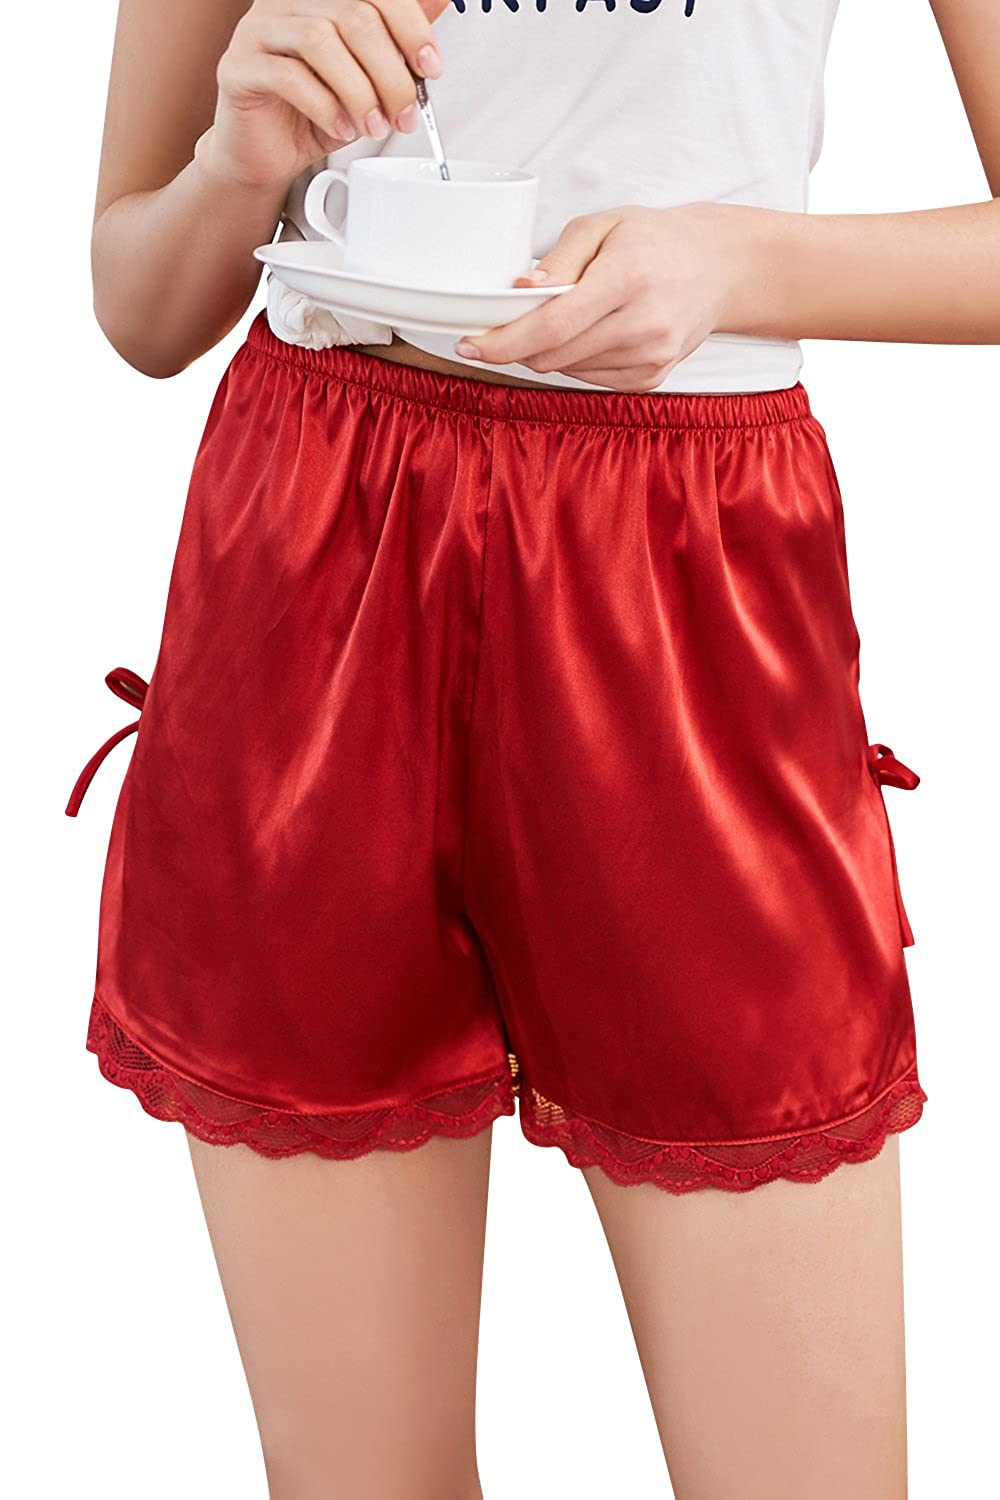 Dolamen Women's Pyjamas Bottoms Shorts Satin, 2 Pack 2018 Silky Satin Nightwear Underwear Lace Boxer Casual Trunks Trousers Pants with Elastic Waistband, for Sleeping & Leisure Time